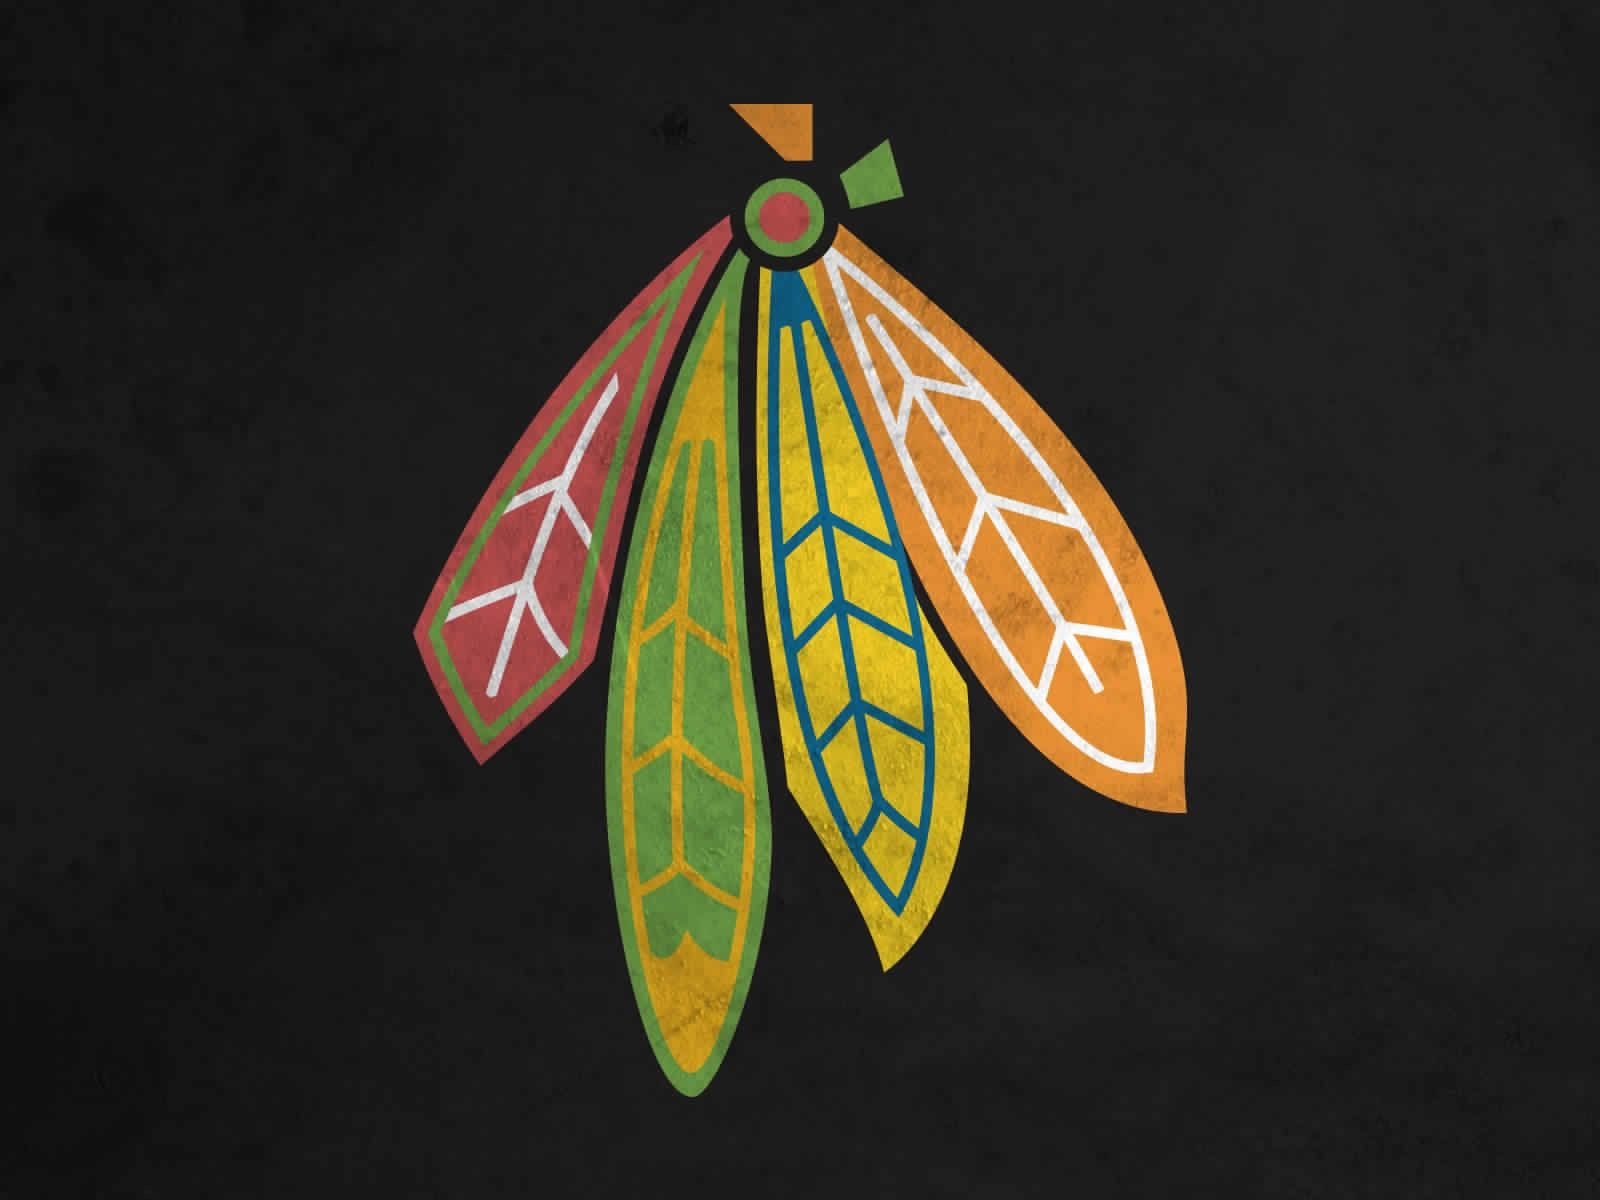 Chicago Sports Wallpaper Iphone 6: Pin On Chicago Blackhawks